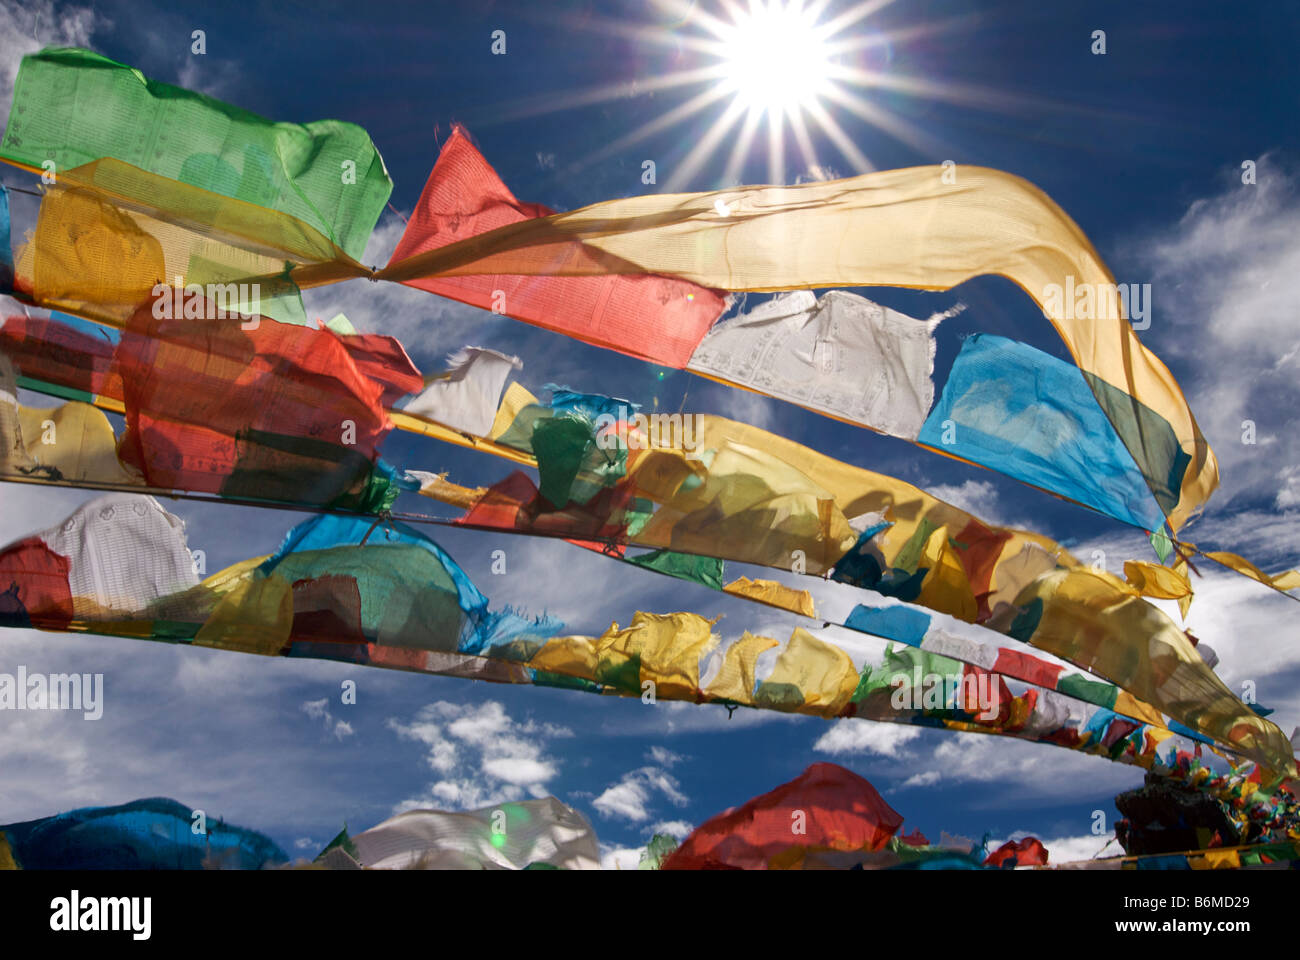 Prayer flags flapping in the midday sun atop an outcrop at Namtso lake, Tibet - Stock Image